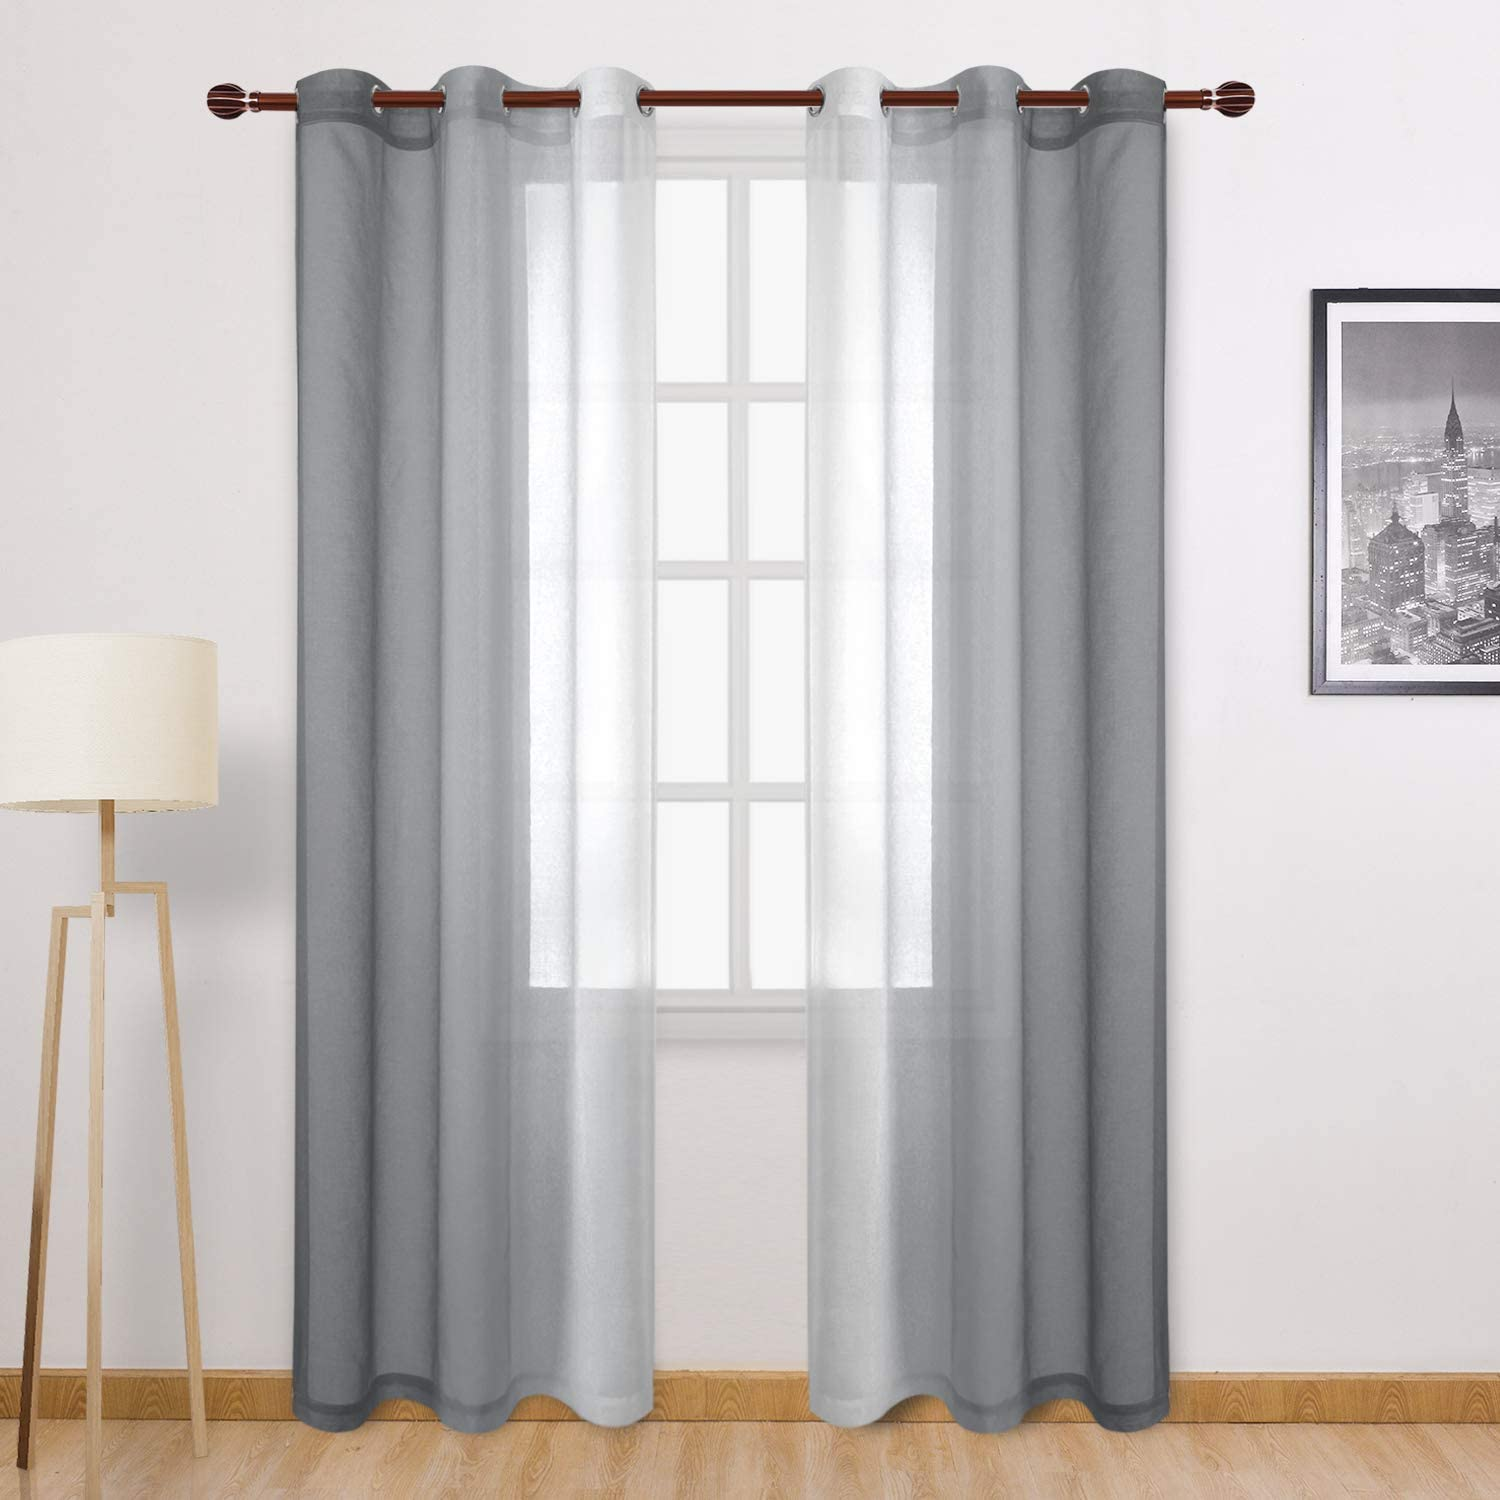 DWCN Grey Faux Linen Ombre Sheer Curtains - Semi Voile Gradient Grommet Top Curtains for Bedroom and Living Room, Set of 2 Window Curtain Panels, 42 x 84 Inches Long